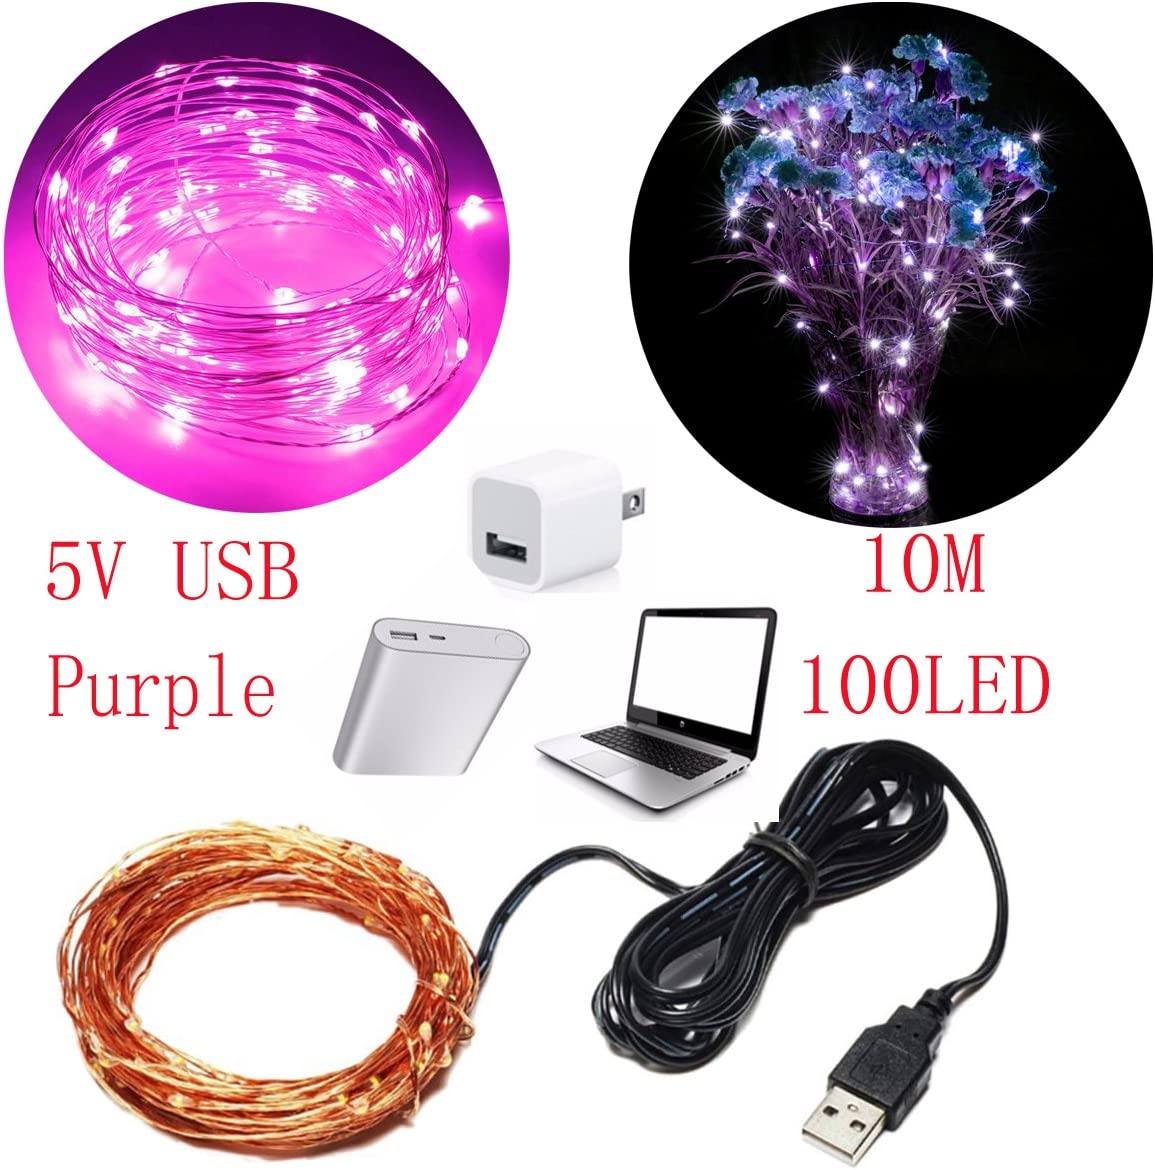 AOCKS String Lights,100 LEDs USB Starry Fairy Lights Waterproof Decorative Lights for Bedroom, Patio, Garden, Yard, Parties, Wedding, Indoor Outdoor Purple